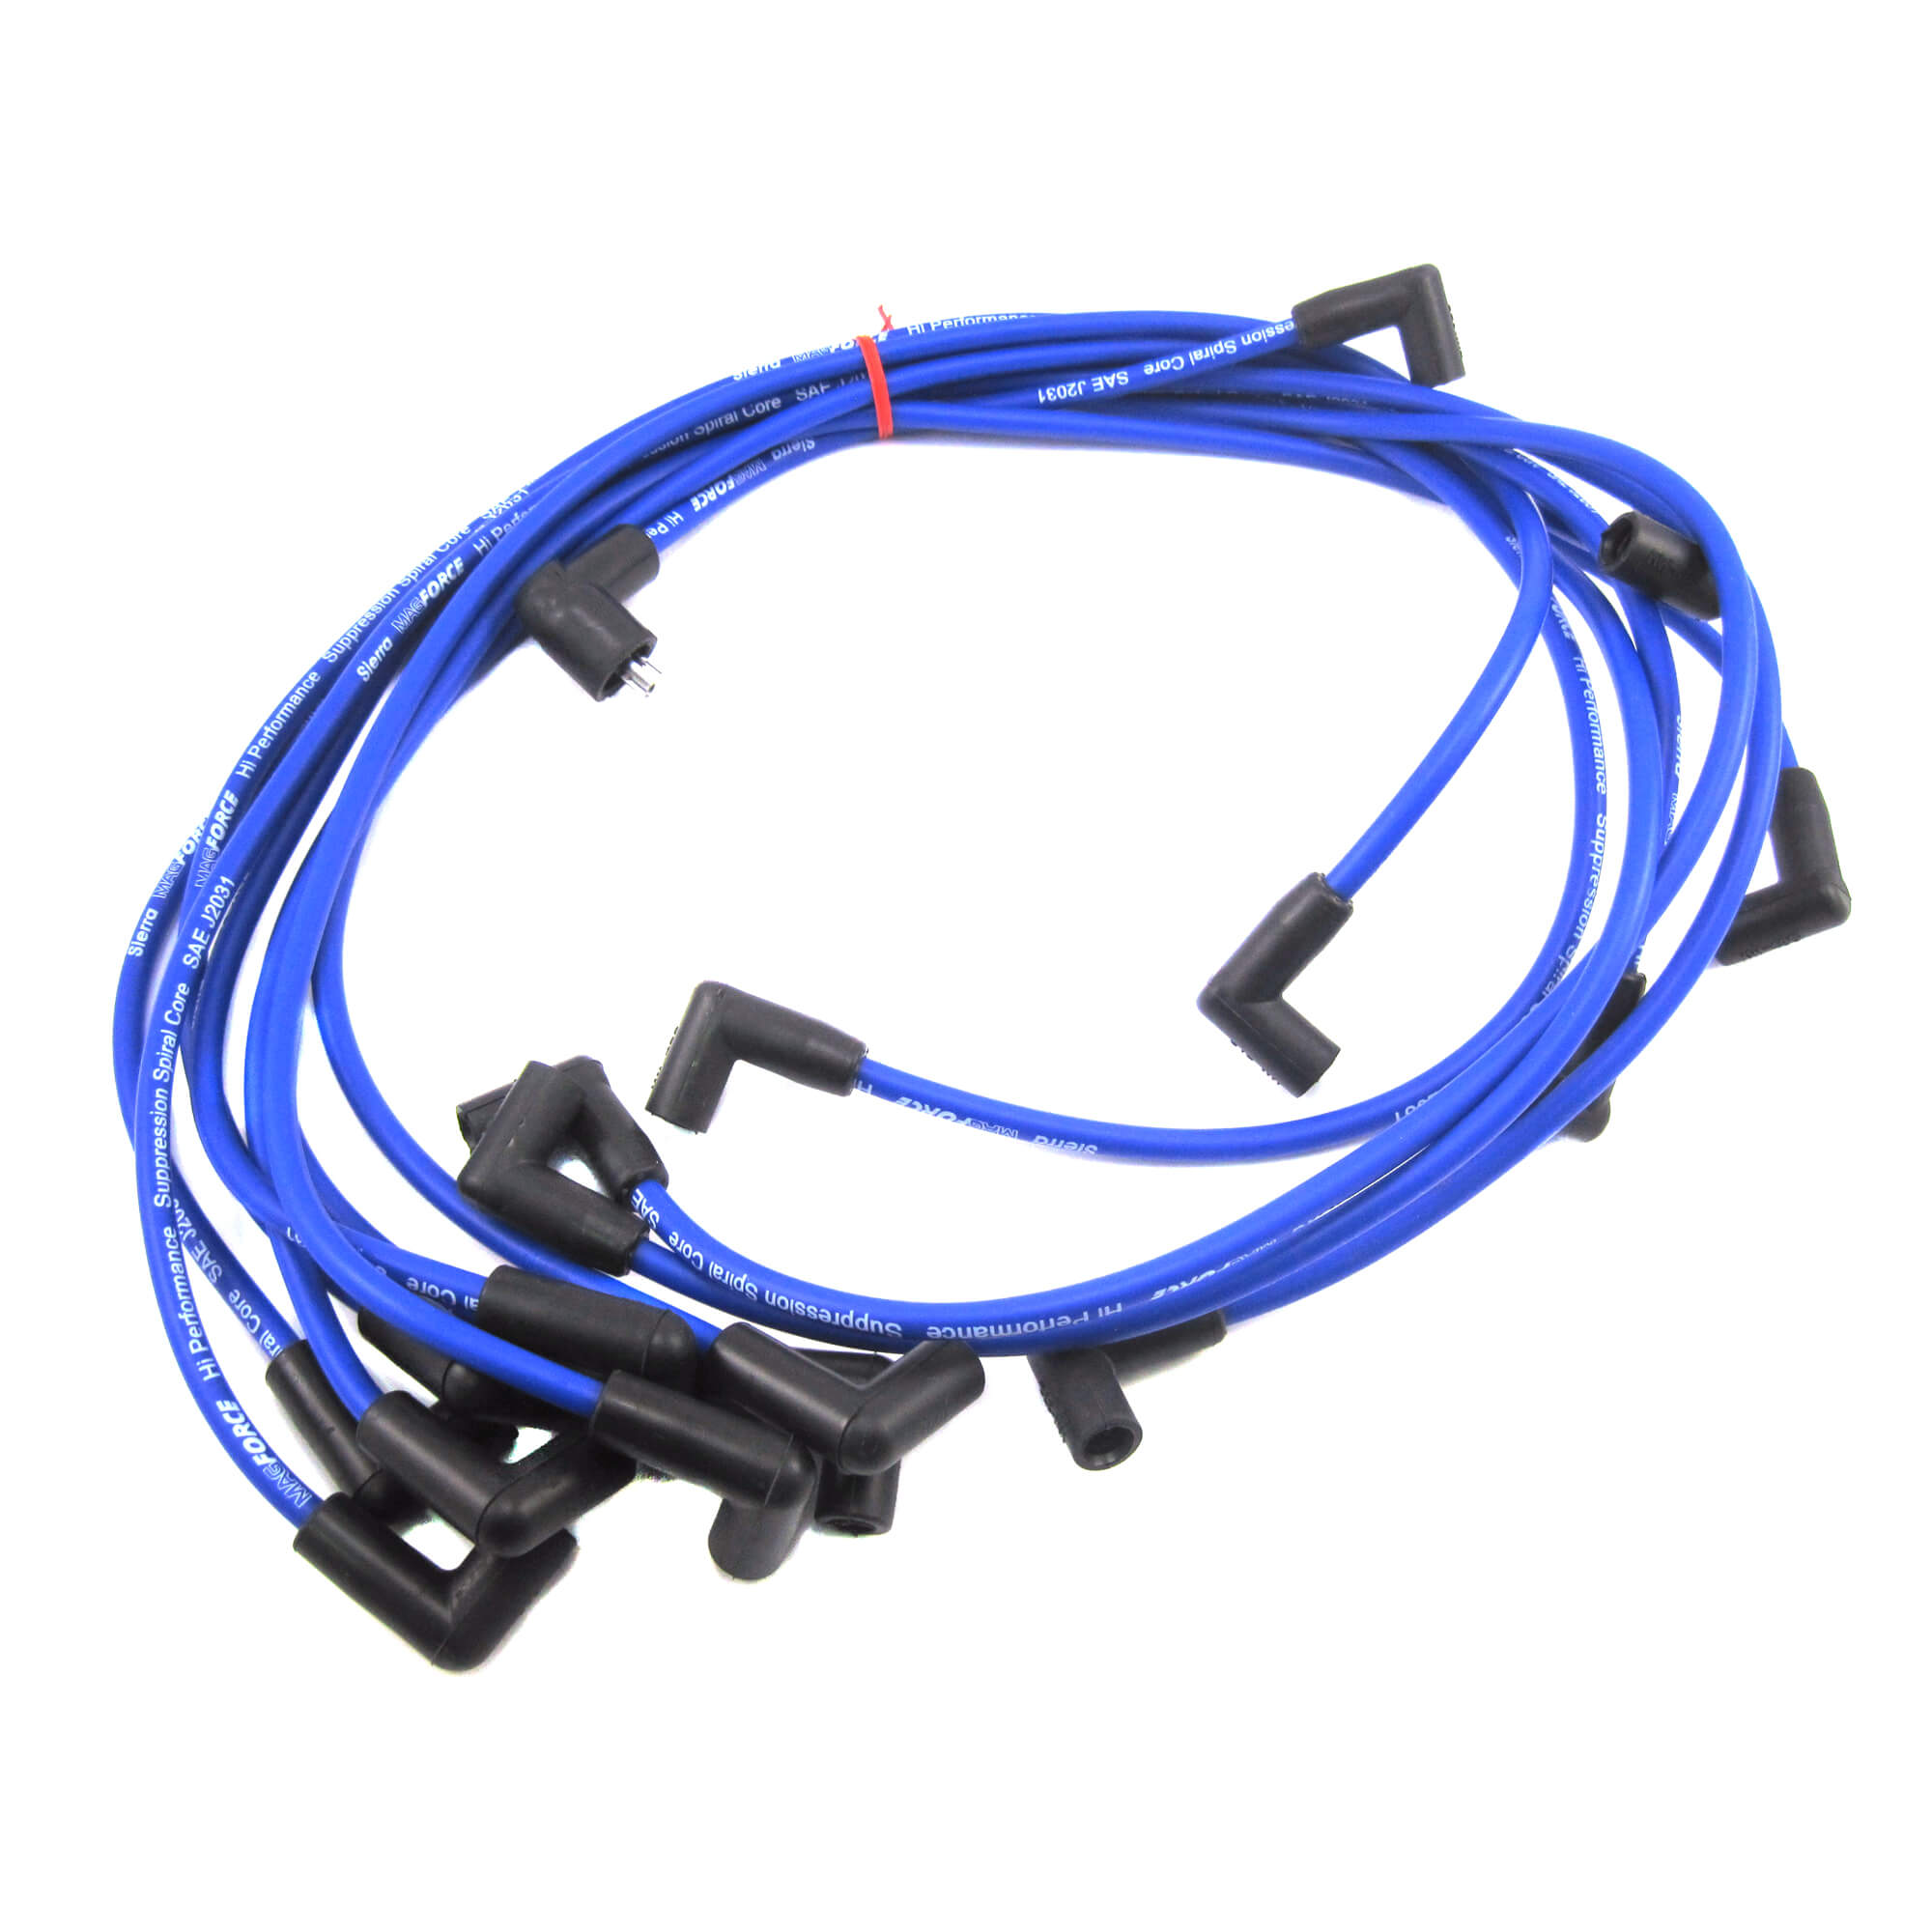 Marine Spark Plug Wire Set for Mercruiser V8 Thunderbolt Replaces 84-816608Q61